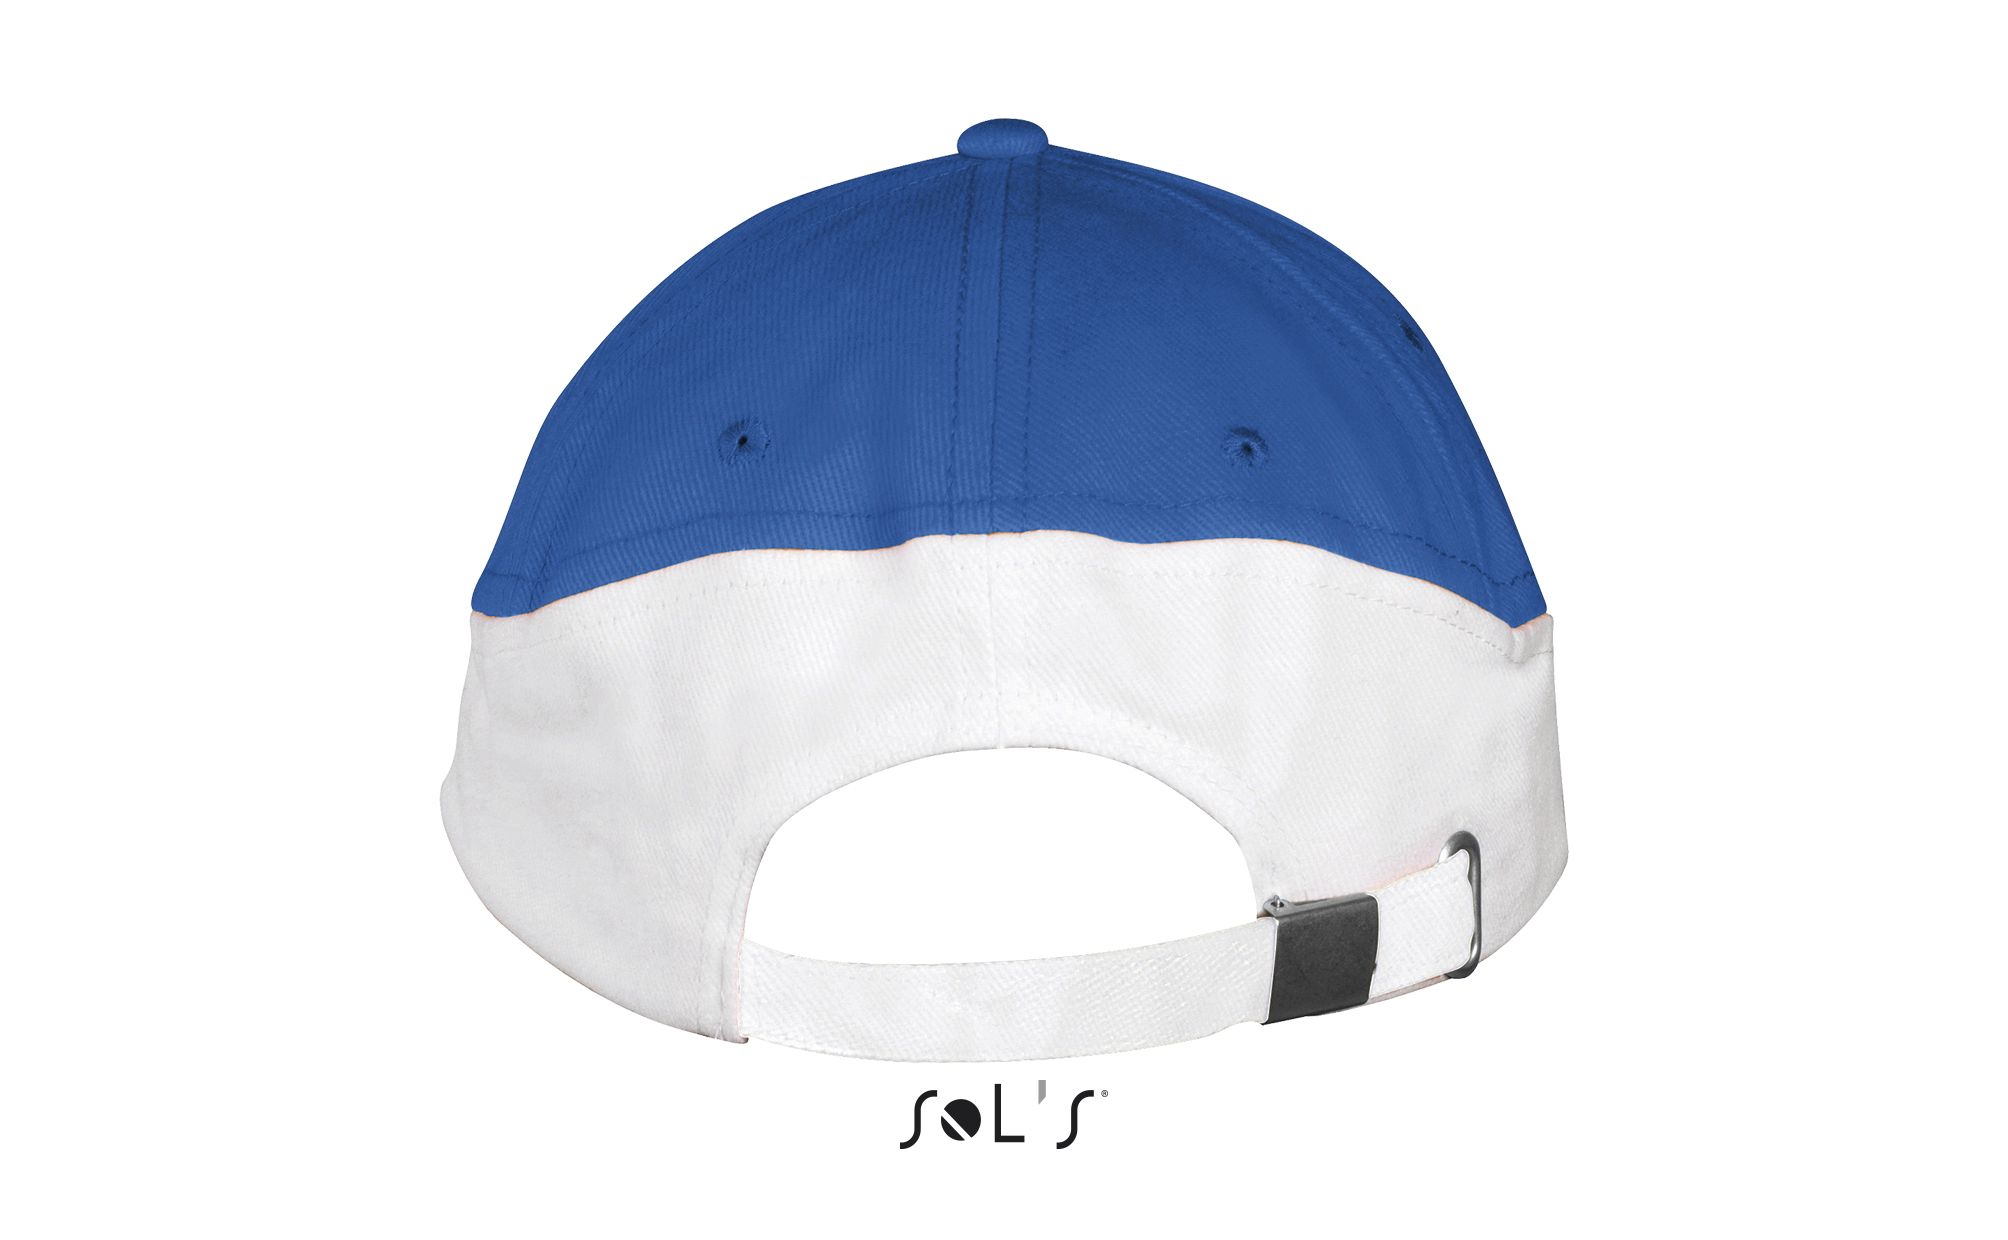 913 - Royal blue / White